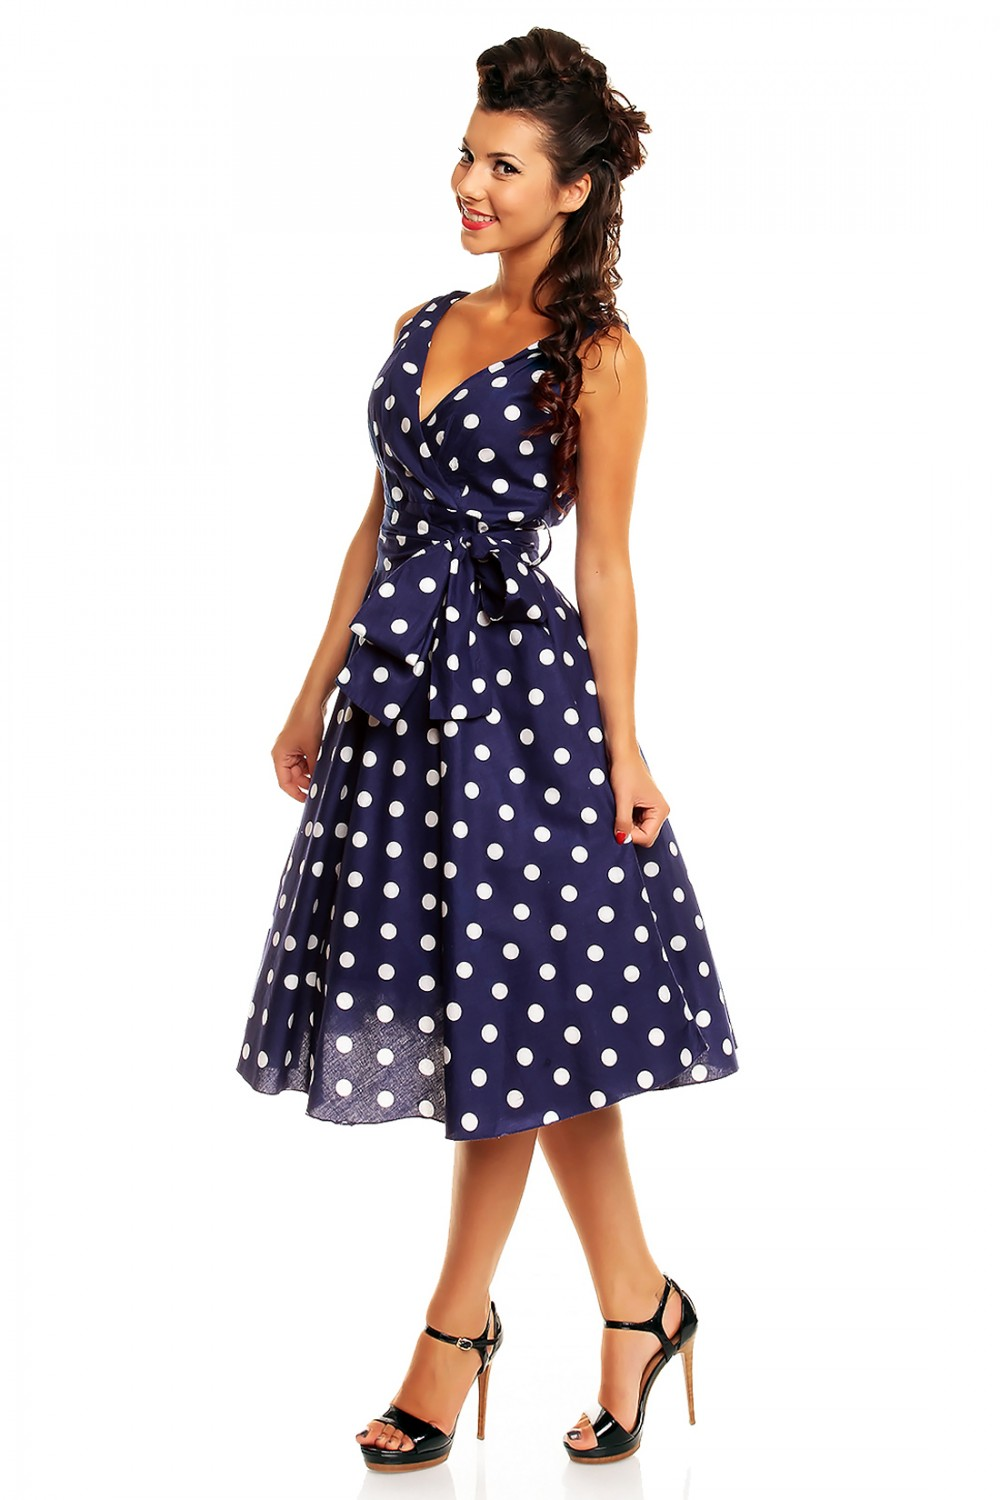 Rockabilly Dress Plus Size Uk - Ficts